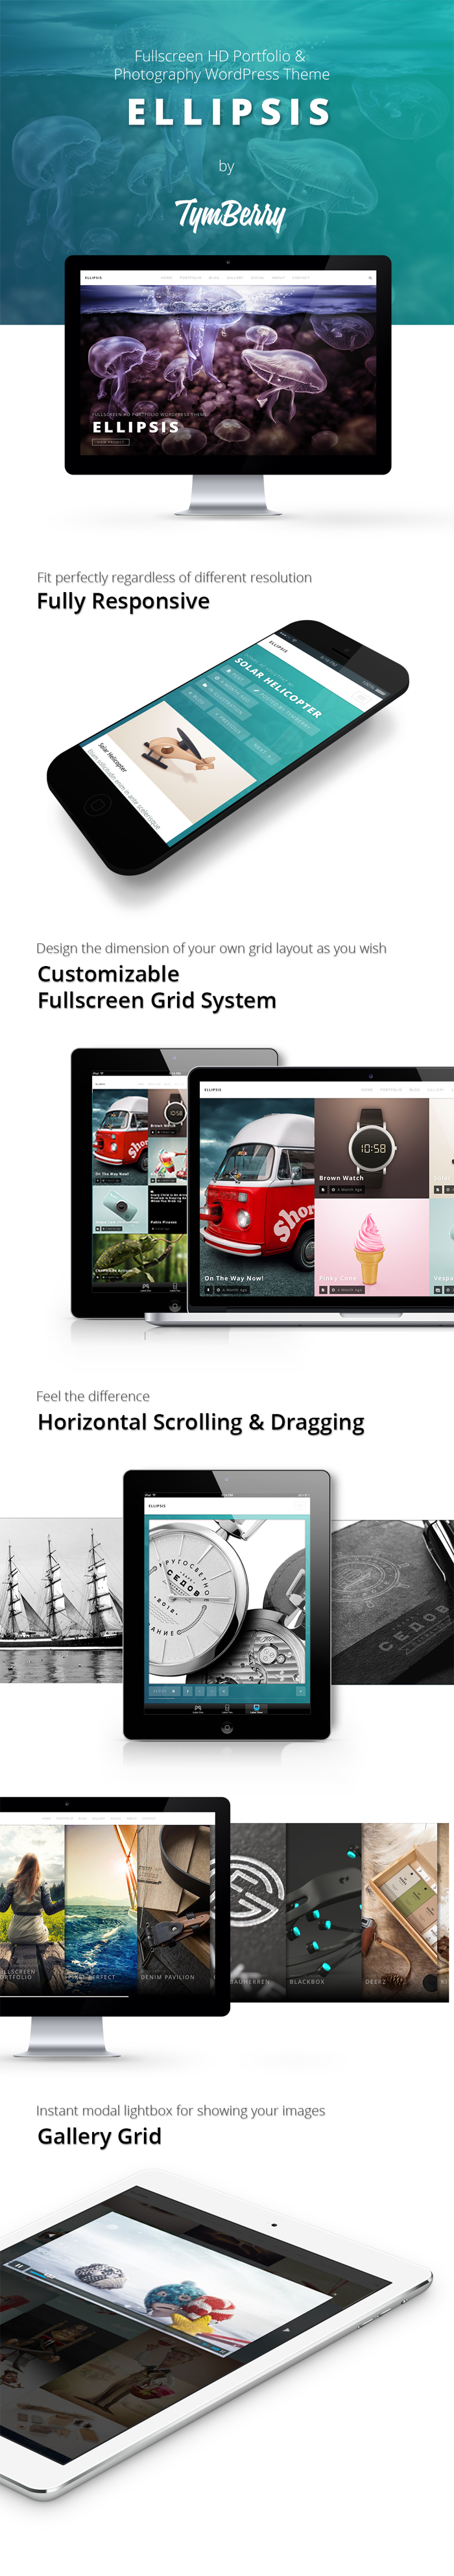 Ellipsis – Fullscreen HD Portfolio & Photography WordPress ThemeEllipsis is a fullsc ...